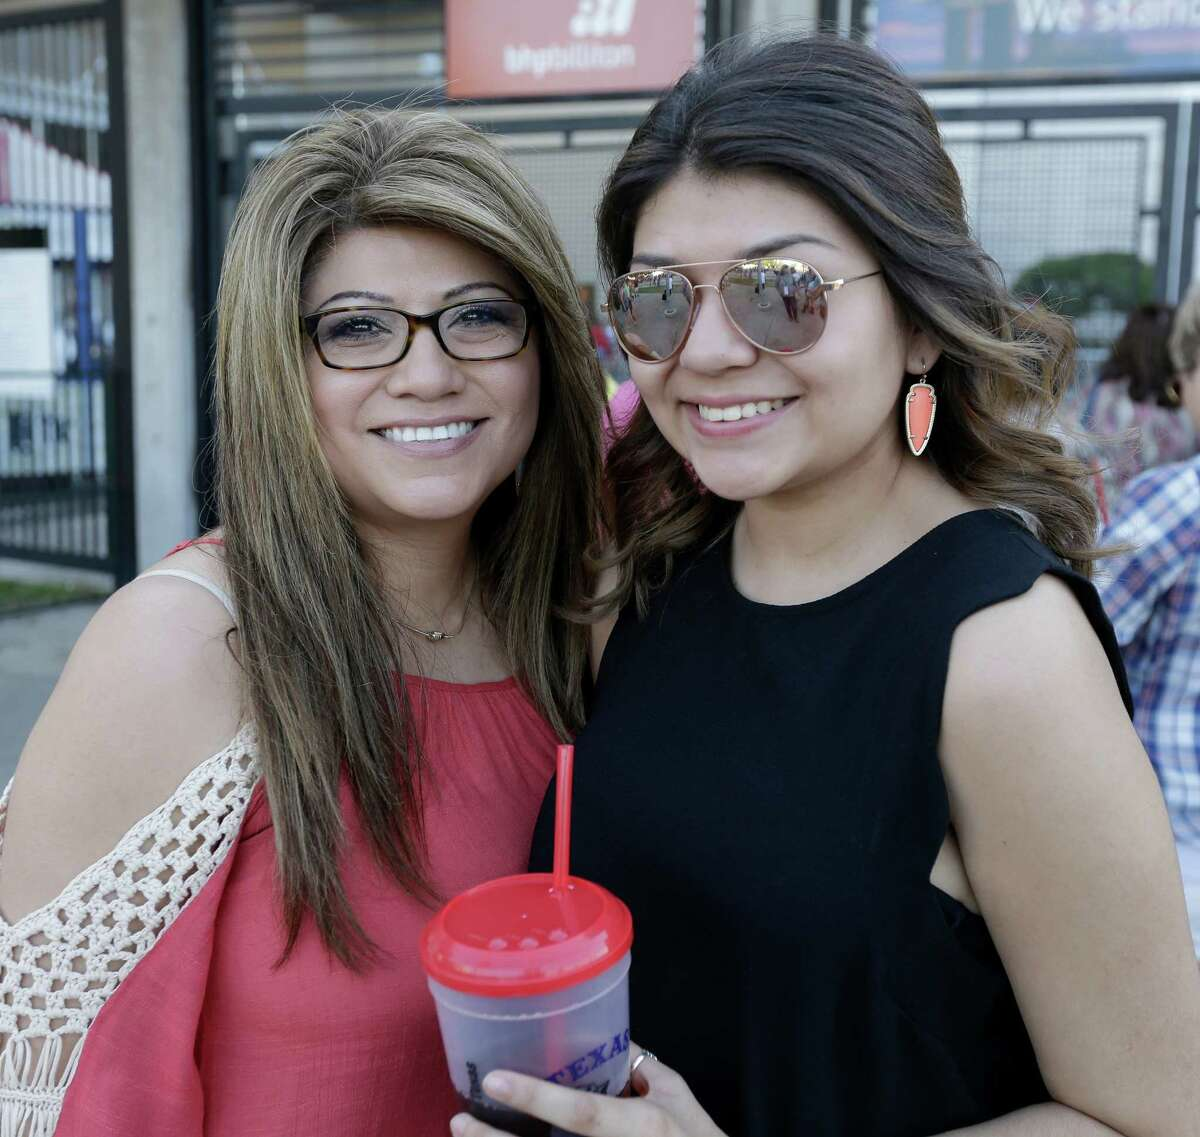 People pose for a photo as they wait in line to enter NRG Stadium for RodeoHouston where Kenny Chesney will perform during the Houston Live Stock and Rodeo Monday, March 14, 2016, in Houston.